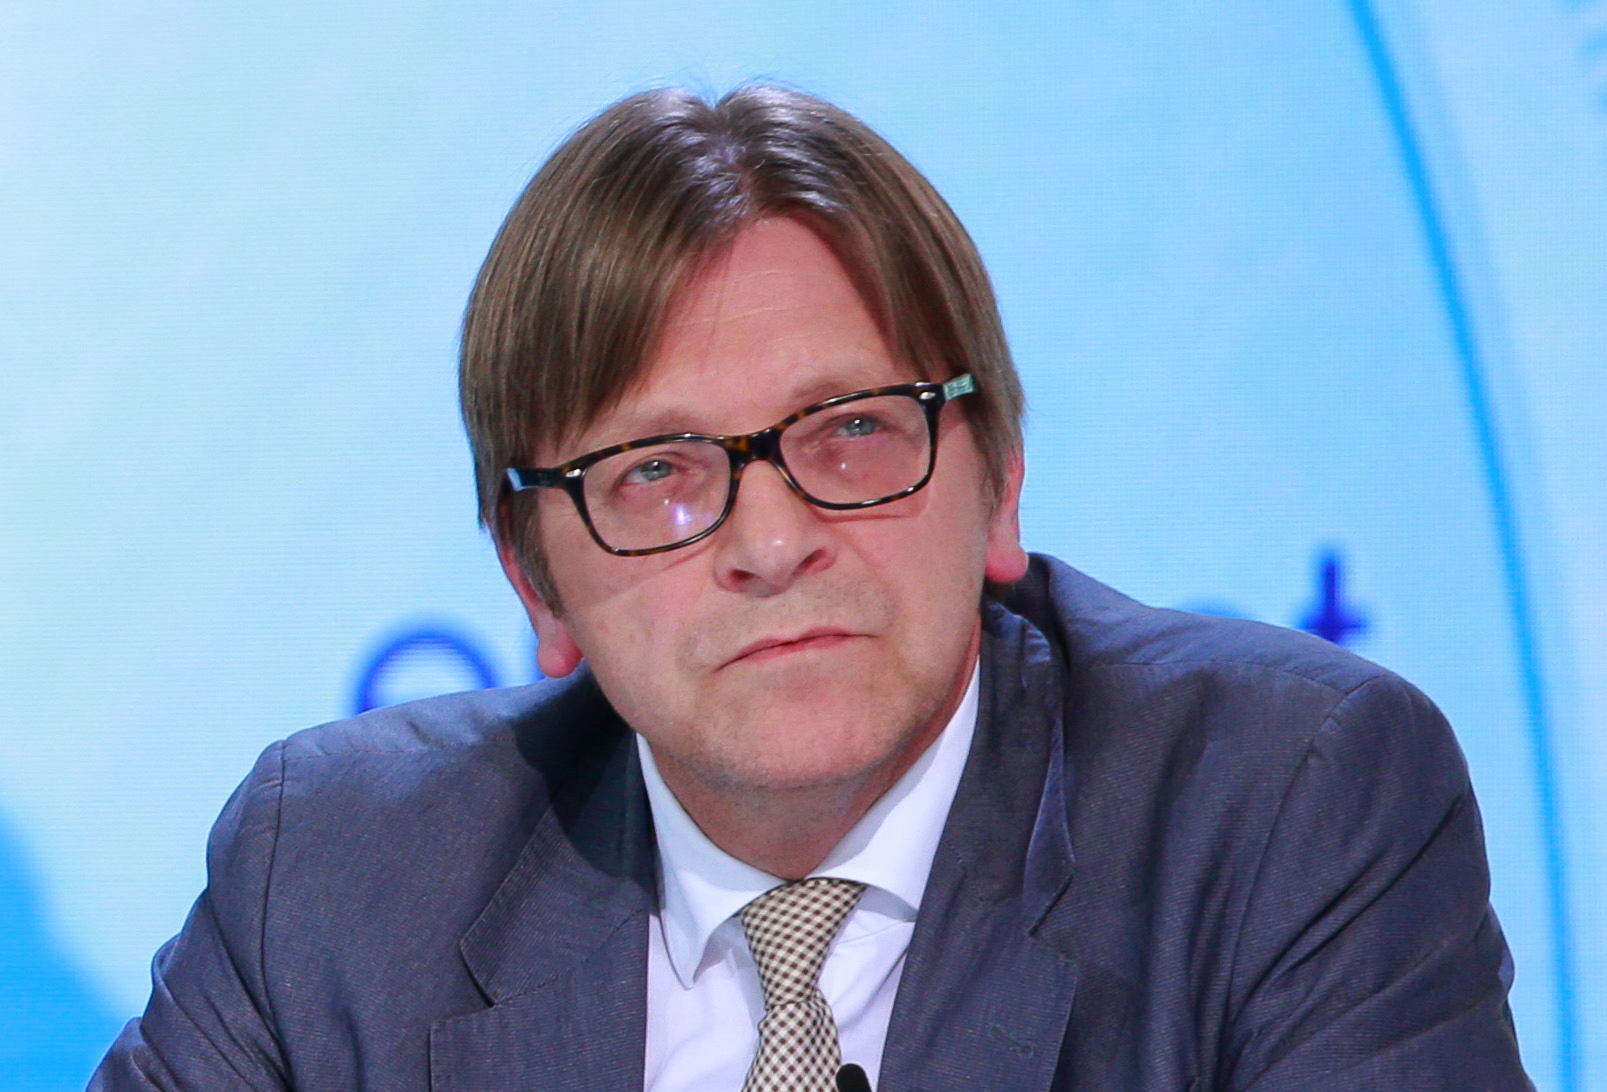 Guy Verhofstadt (cropped) by euranet_plus (CC-BY-SA-2.0)